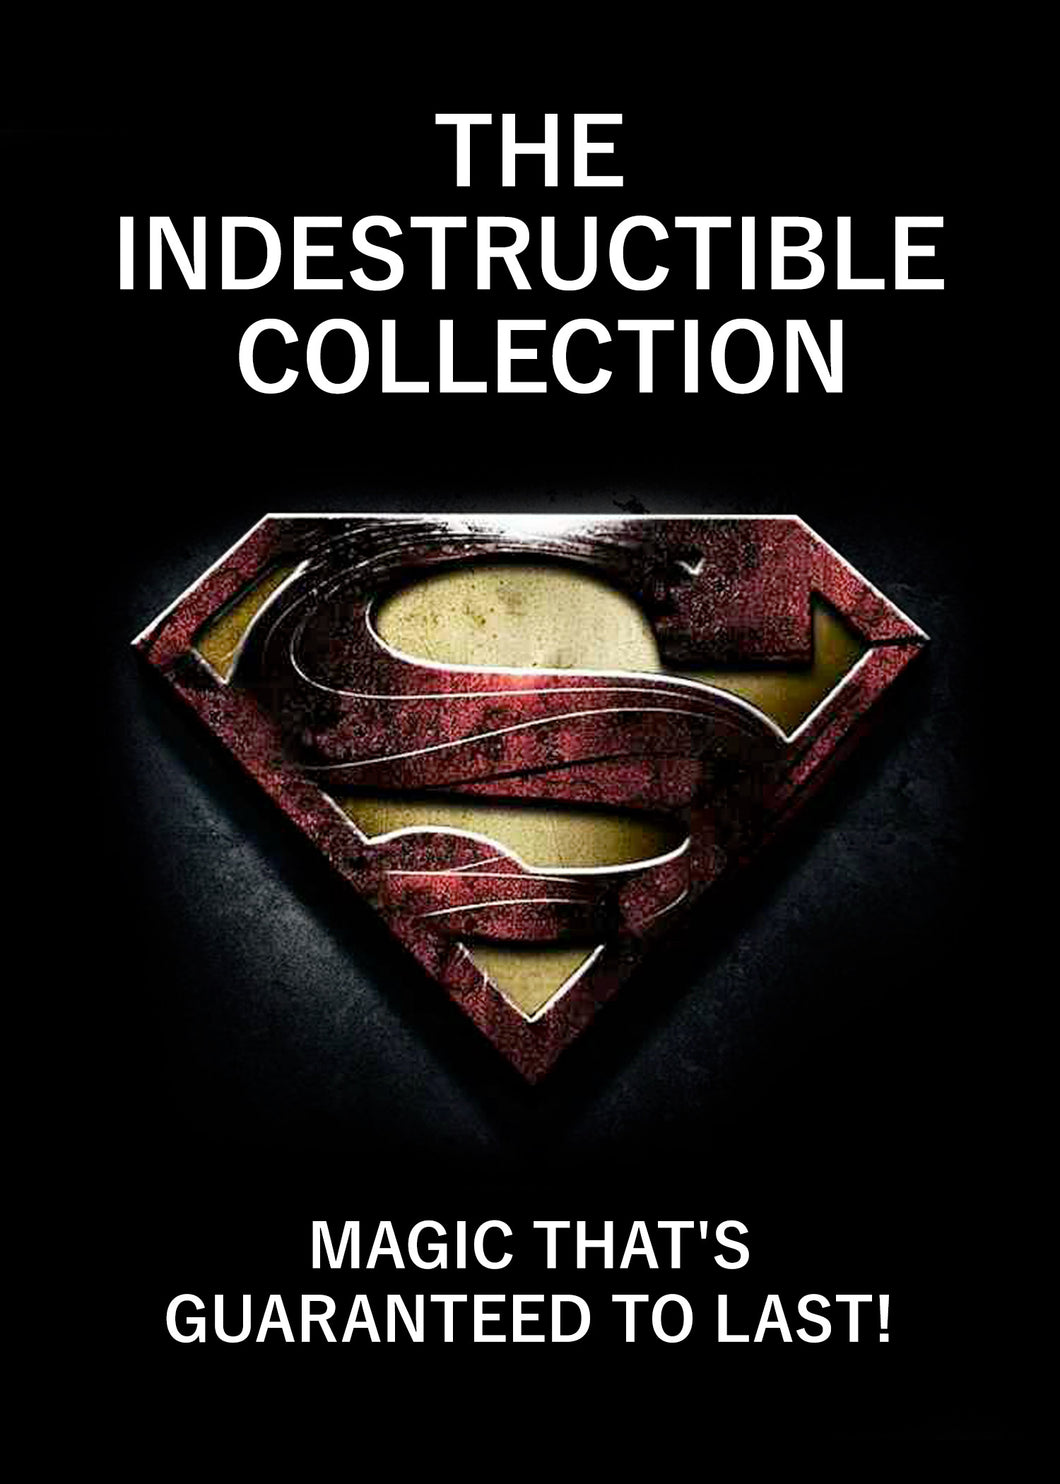 INDESTRUCTIBLE COLLECTION